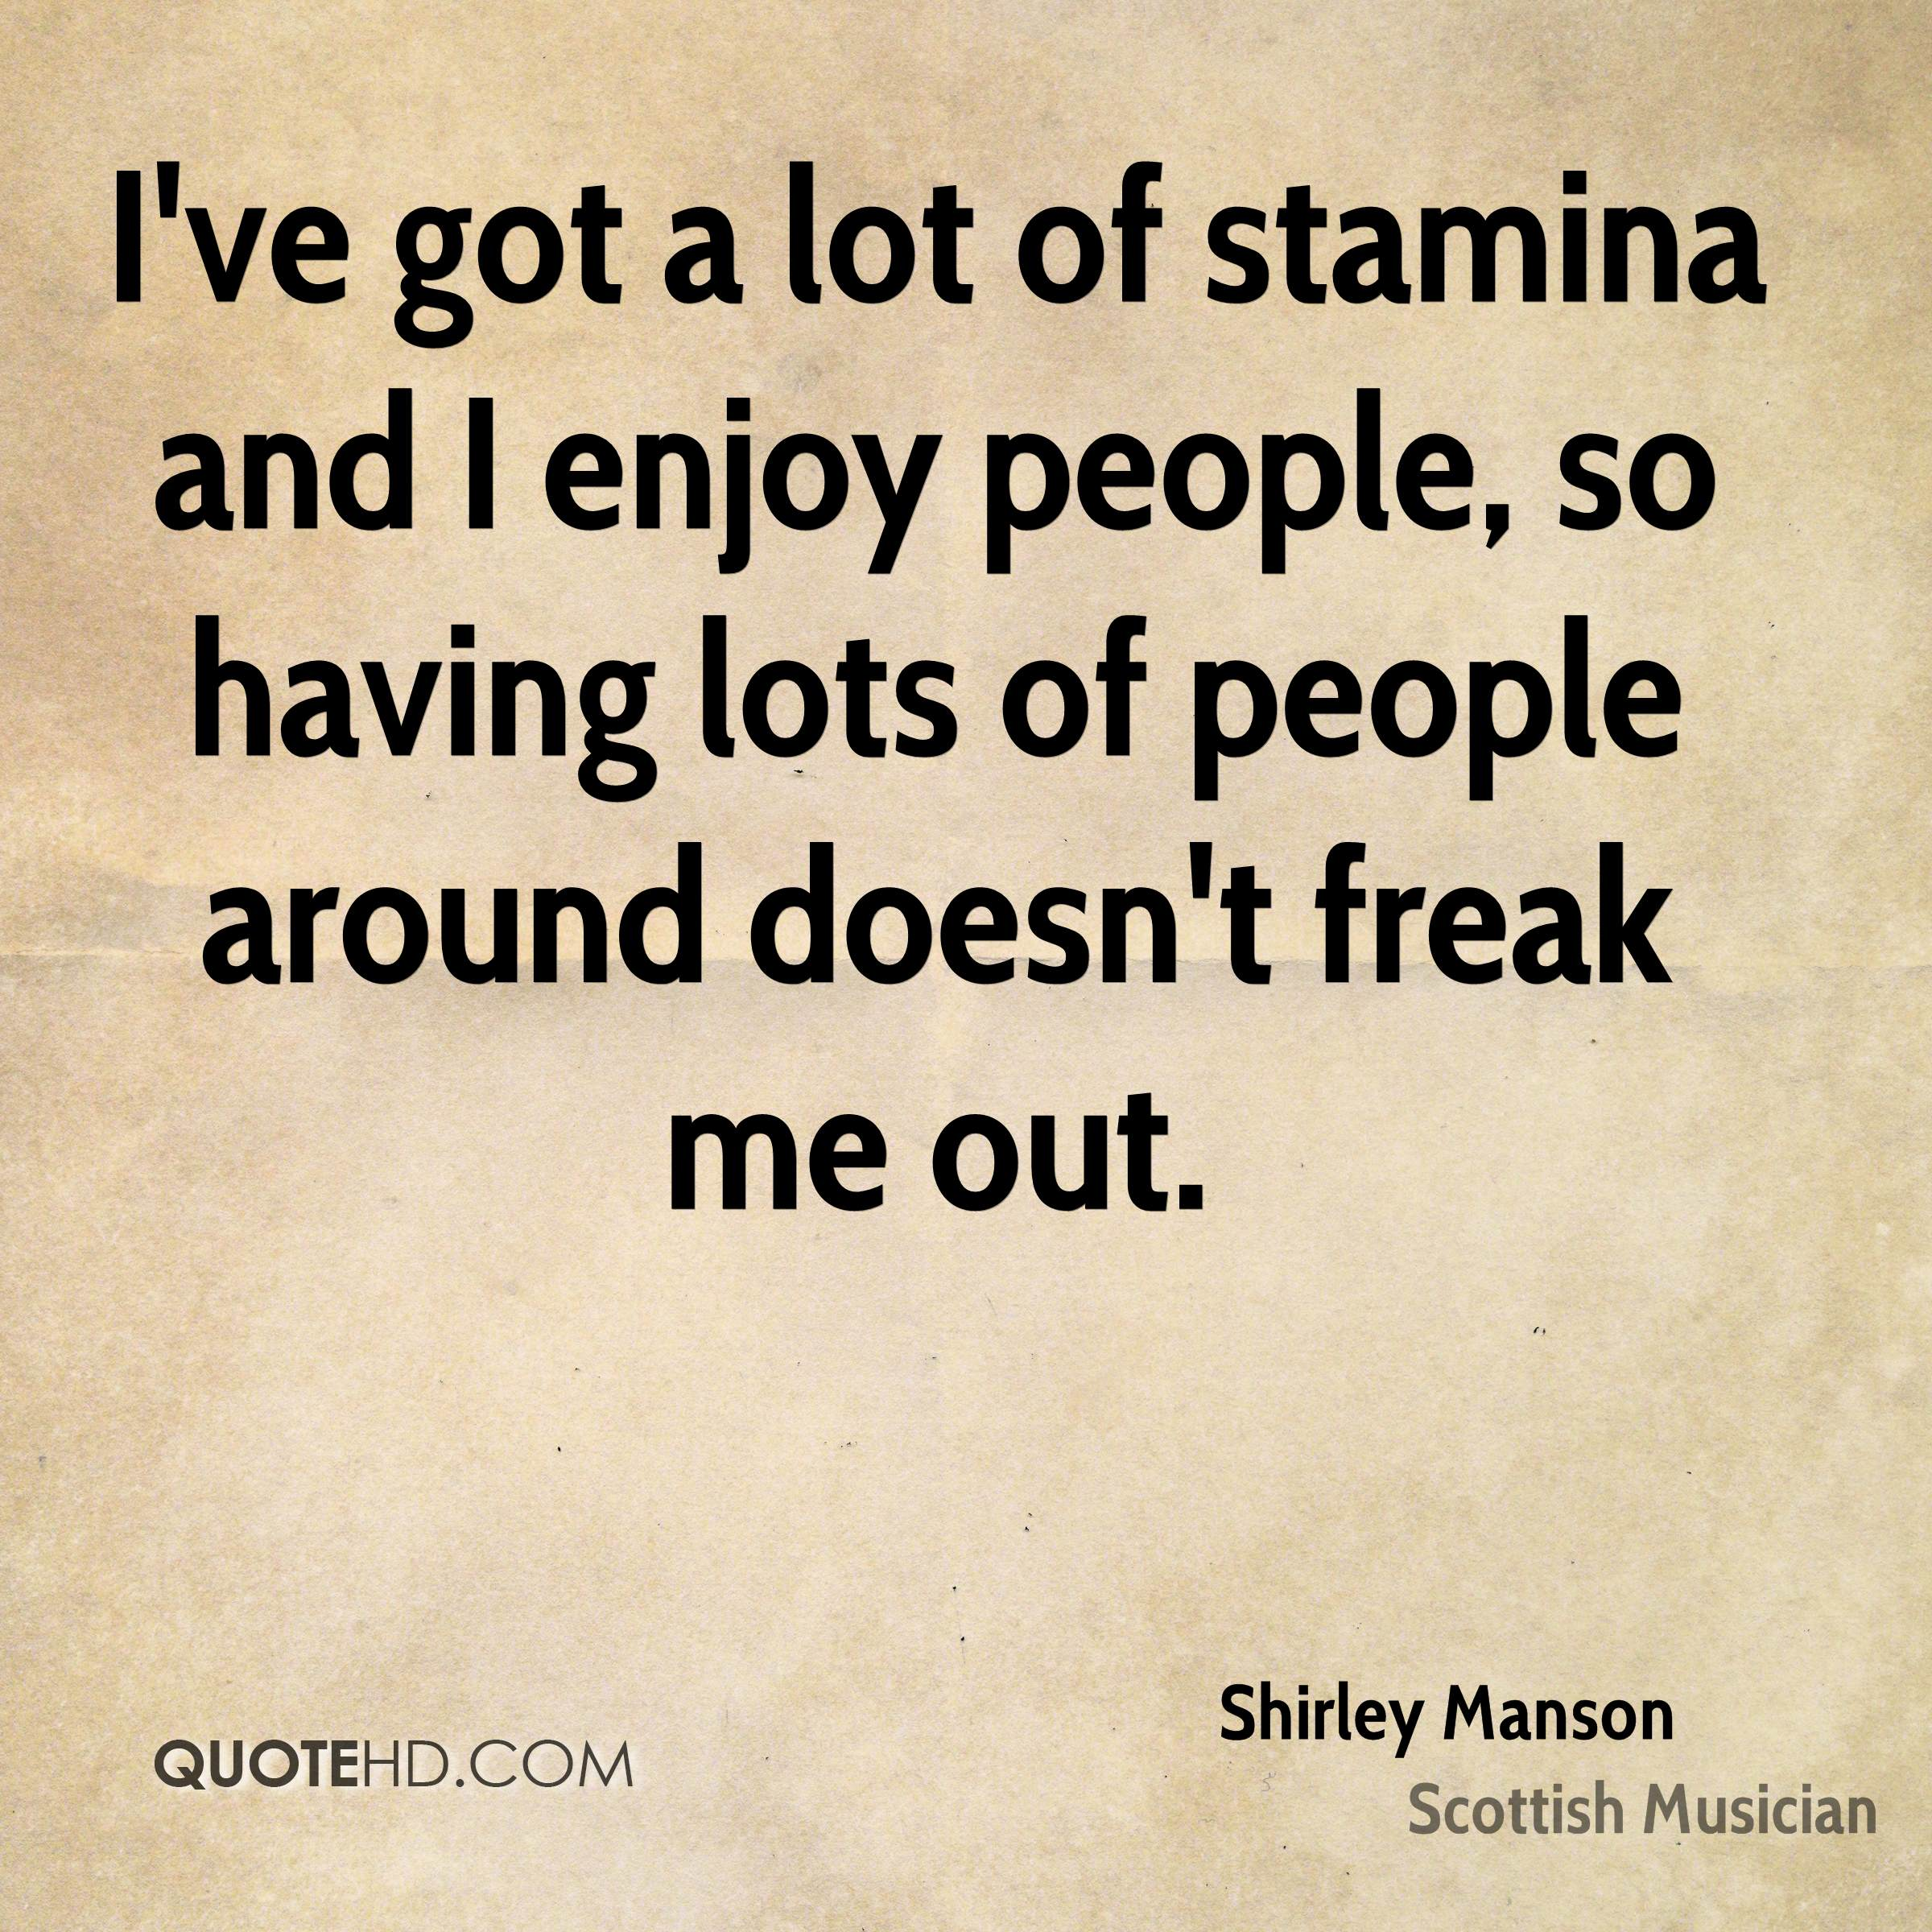 I've got a lot of stamina and I enjoy people, so having lots of people around doesn't freak me out.